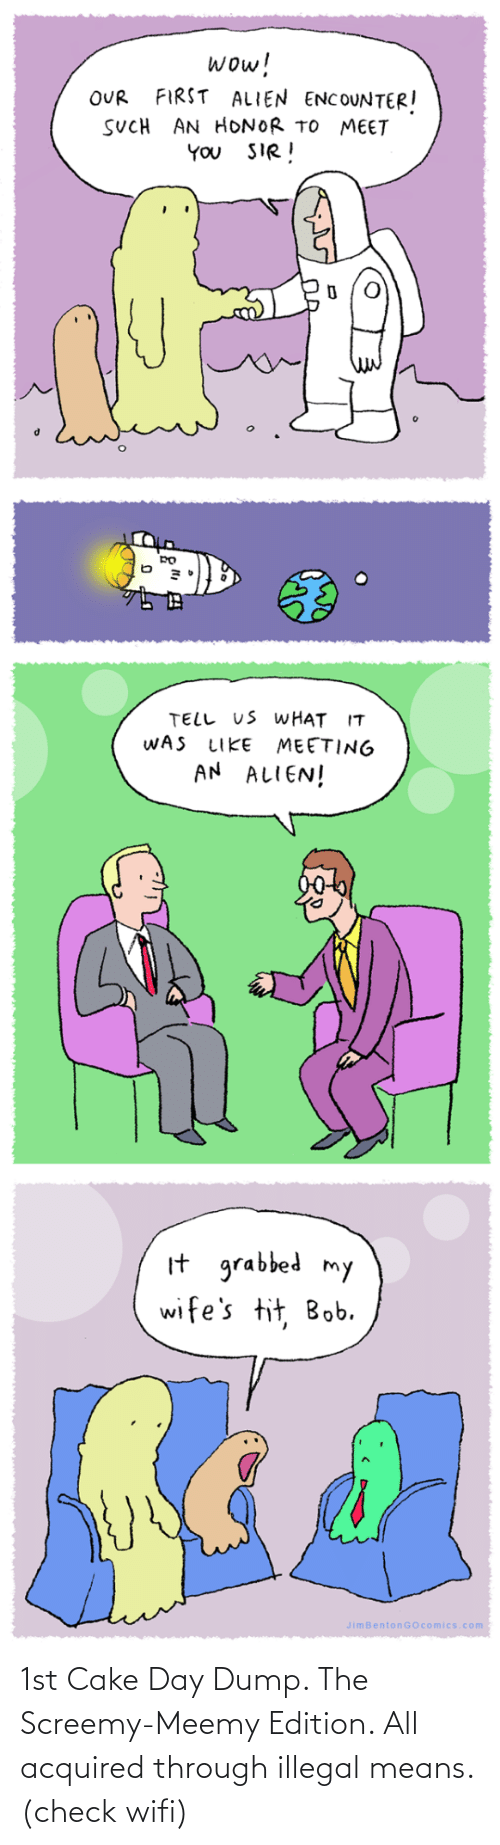 Wow, Alien, and Cake: wow!  FIRST ALIEN ENCOUNTER!  OUR  SUCH AN HONOR TO MEET  YOU SIR!  TELL US WHAT IT  WAS  MEETING  AN ALIEN!  LIKE  It grabbed my  wife's tit, Bob.  JimBentonGOcomics.com 1st Cake Day Dump. The Screemy-Meemy Edition. All acquired through illegal means. (check wifi)